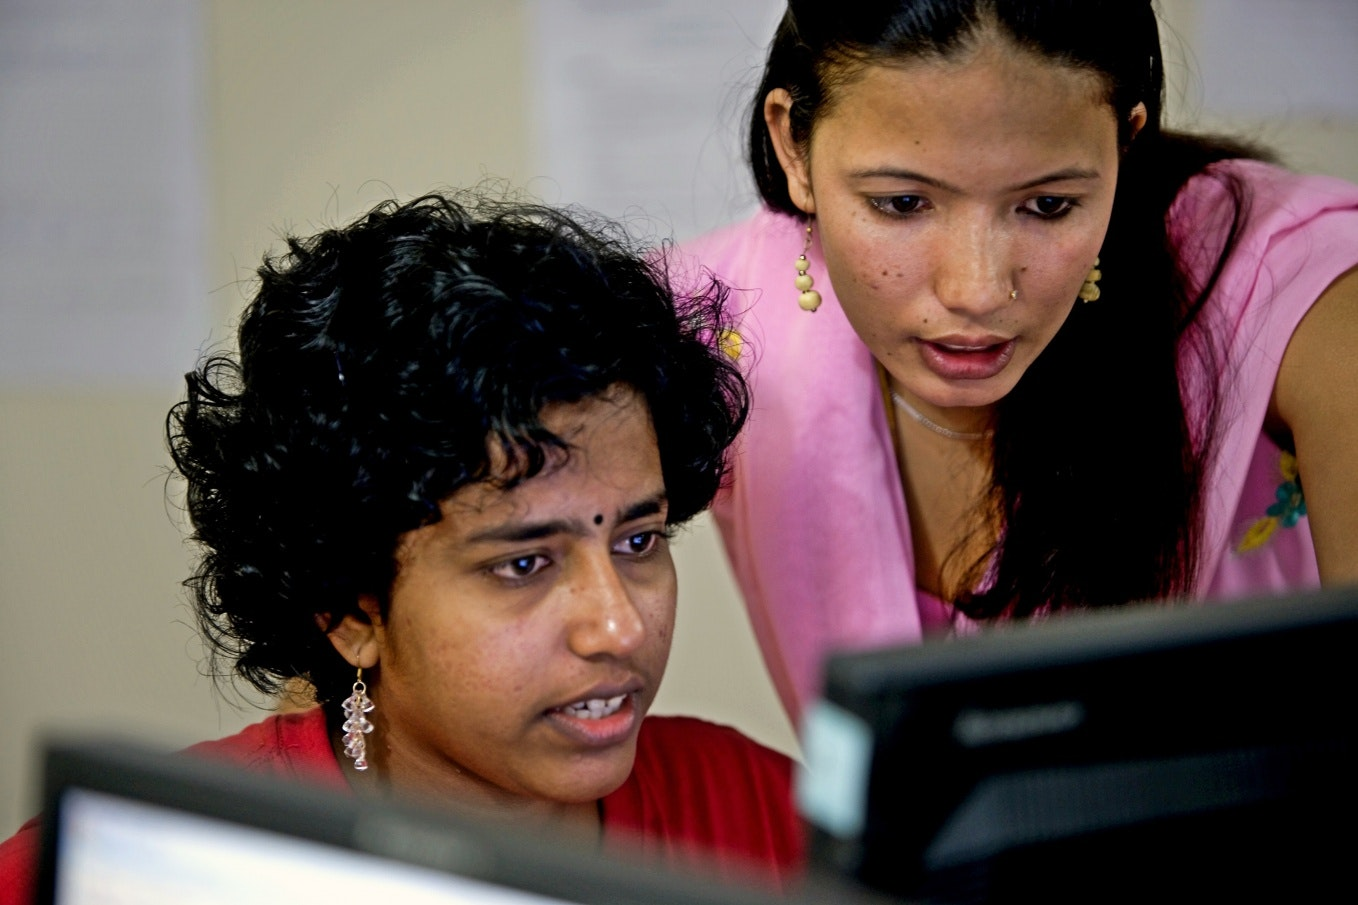 Two women at a computer